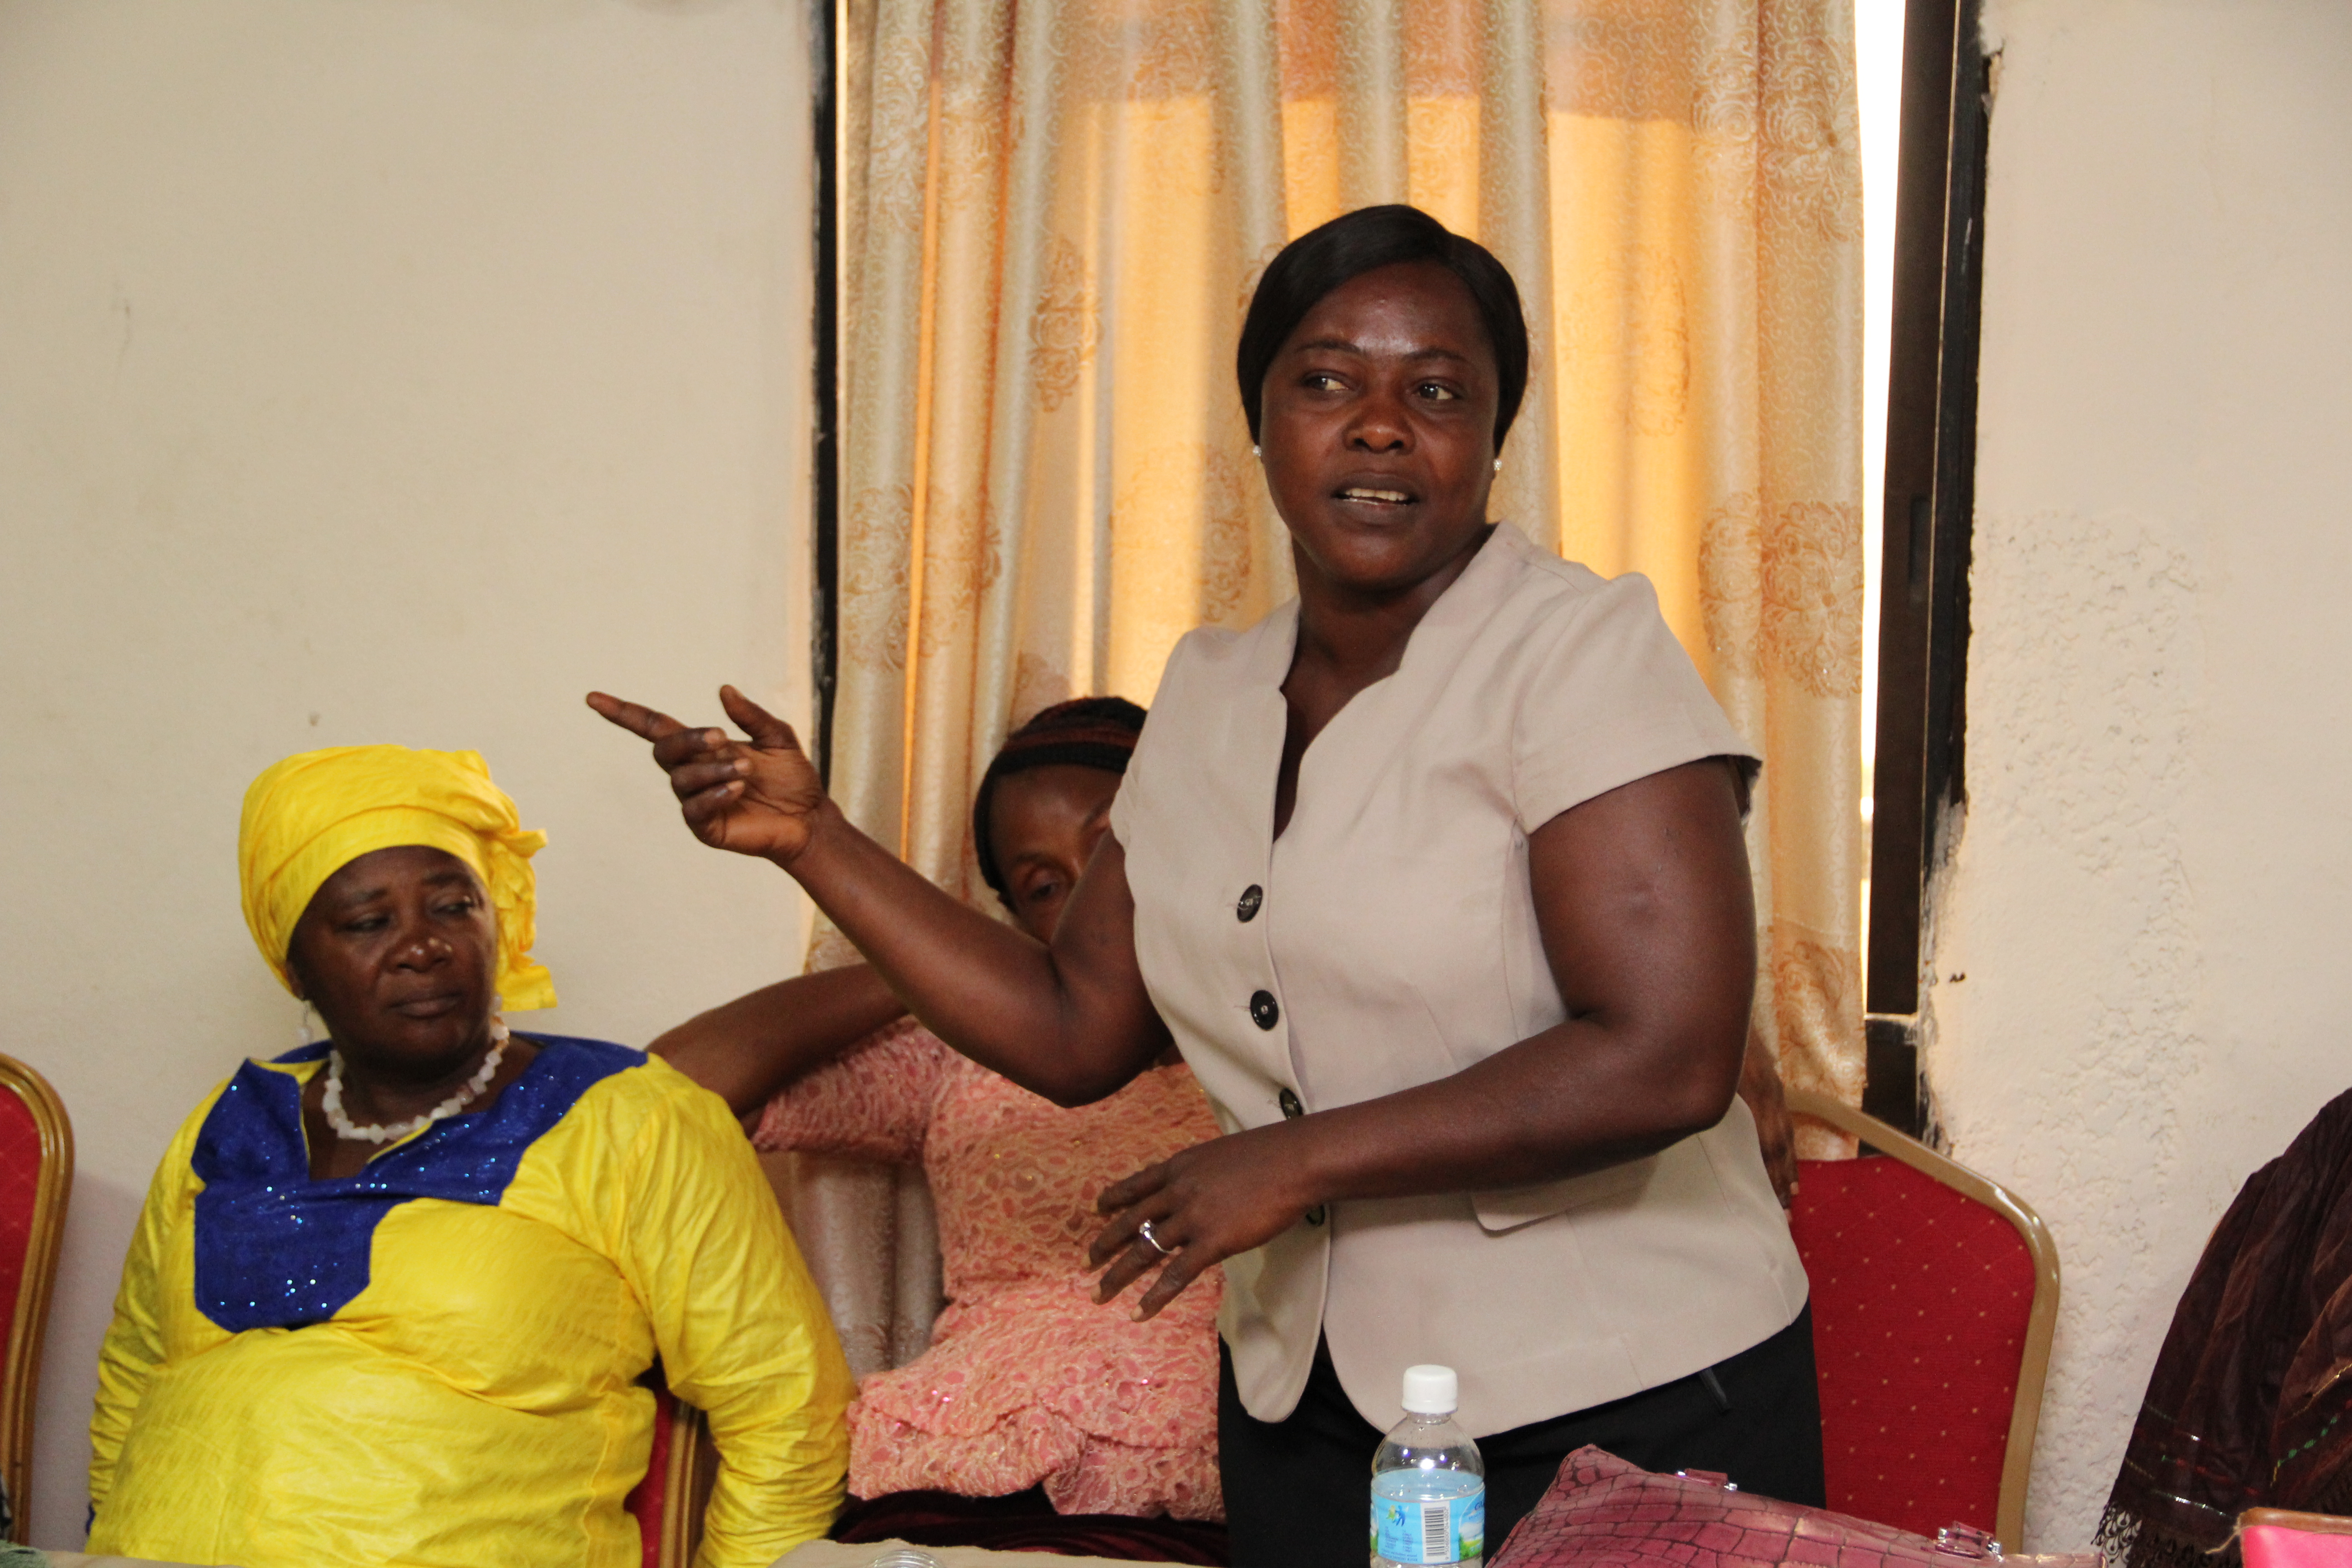 Sierra Leonean women in agribusiness are critical for inclusive economic growth